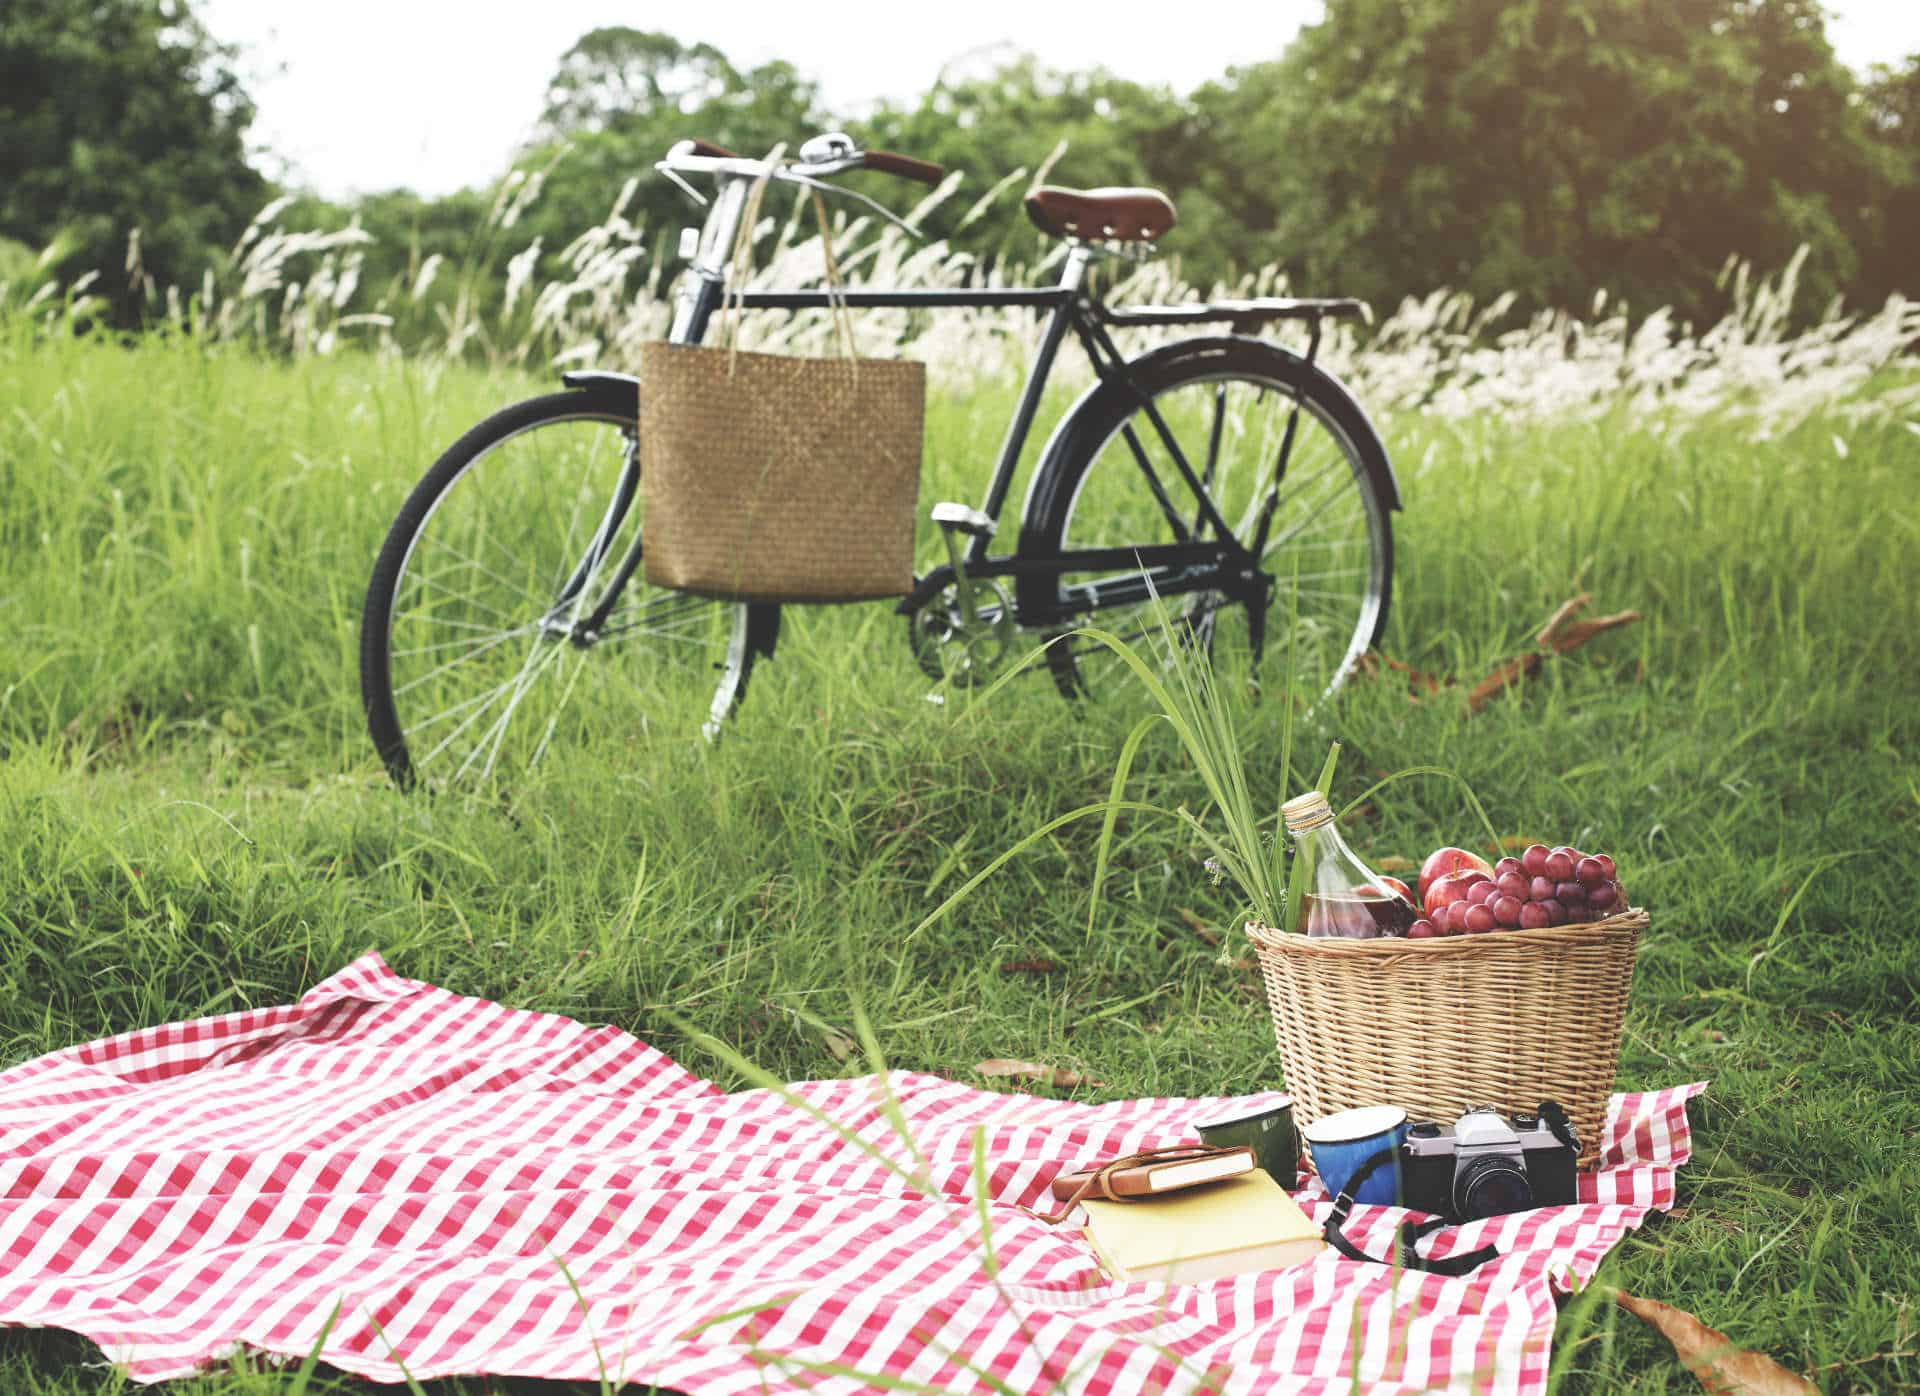 Tulfarris Hotel & Golf Resort Picnic with bicycle at Blessington Lakes